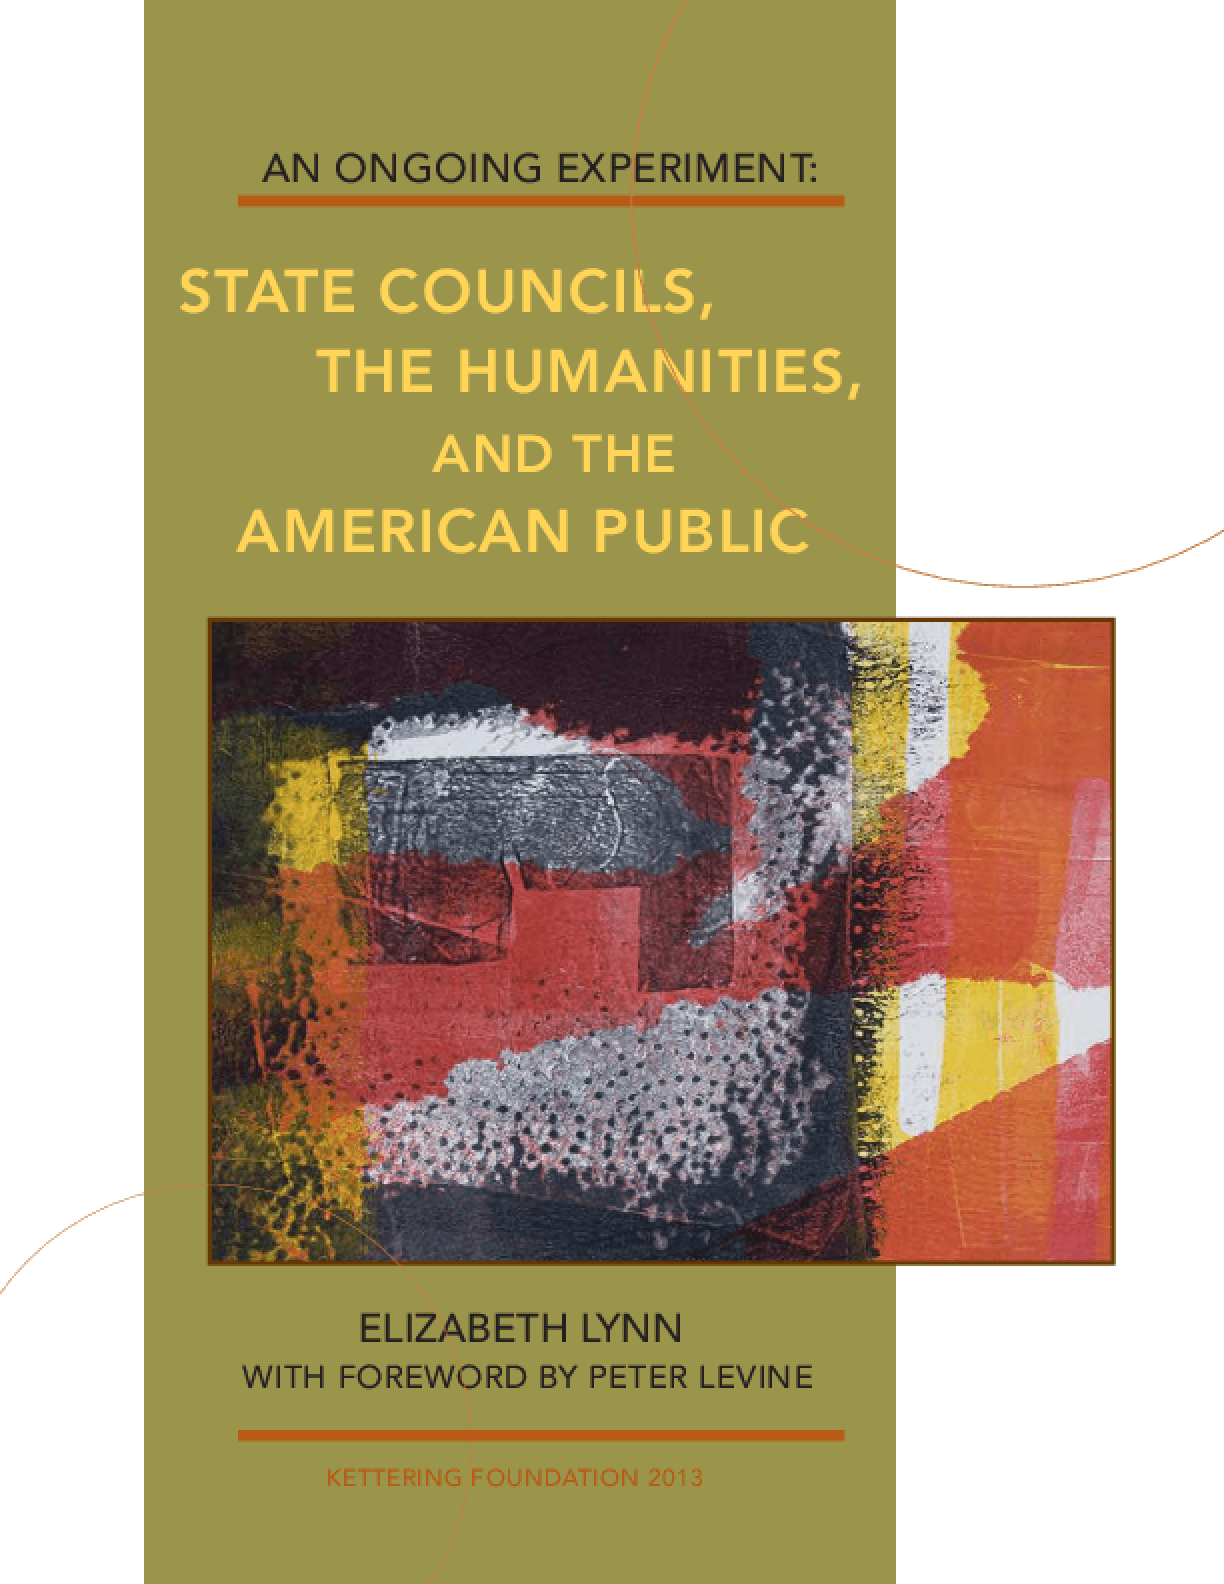 An Ongoing Experiment: State Councils, The Humanities, and the American Public